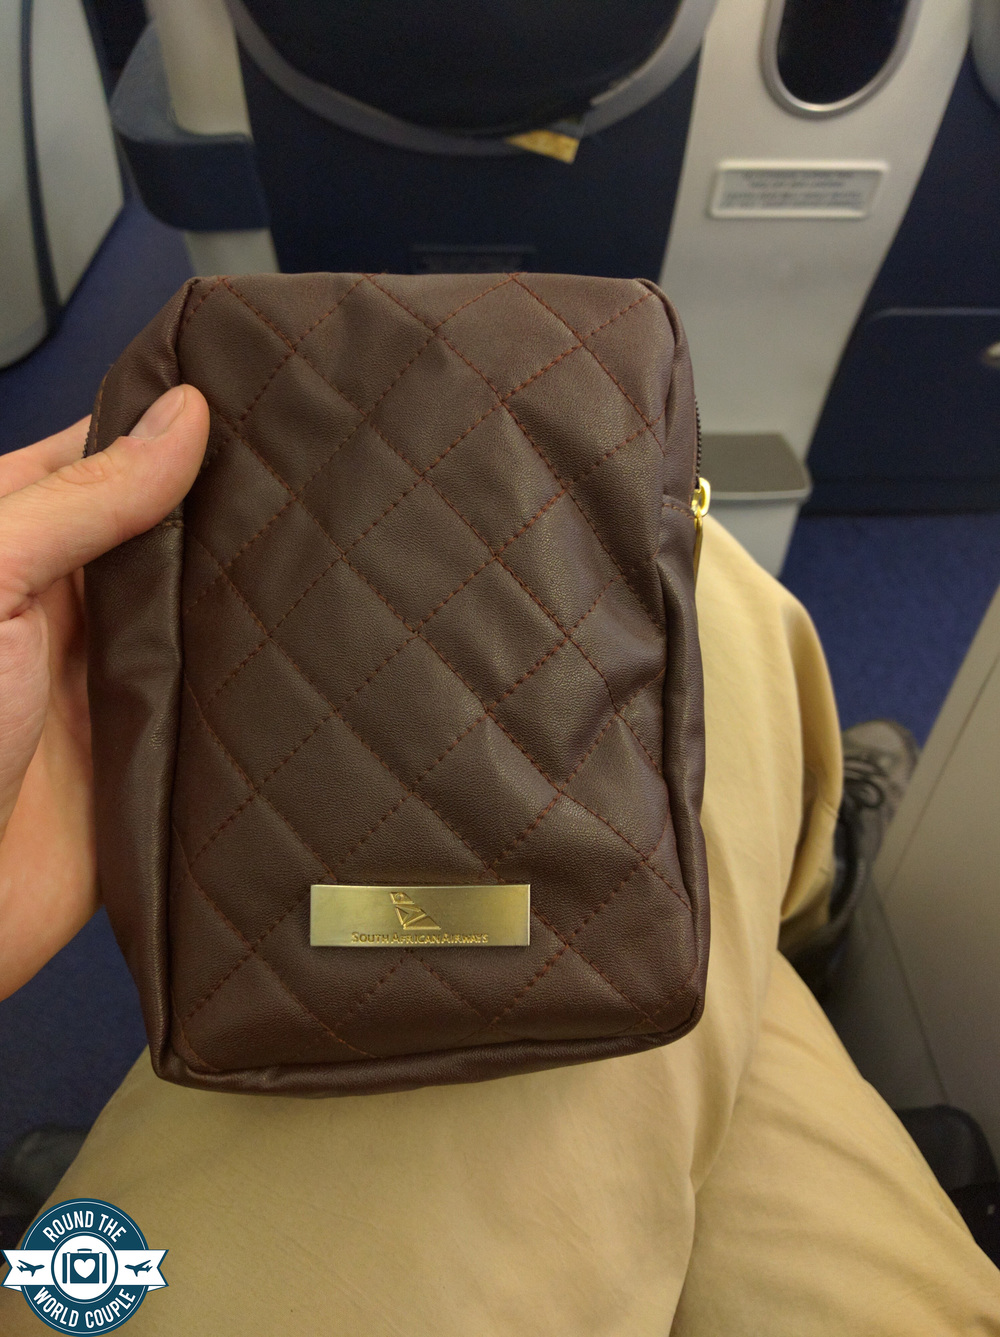 South African Airlines Business Class Sao Paolo to Johannesburg Amenity Kit